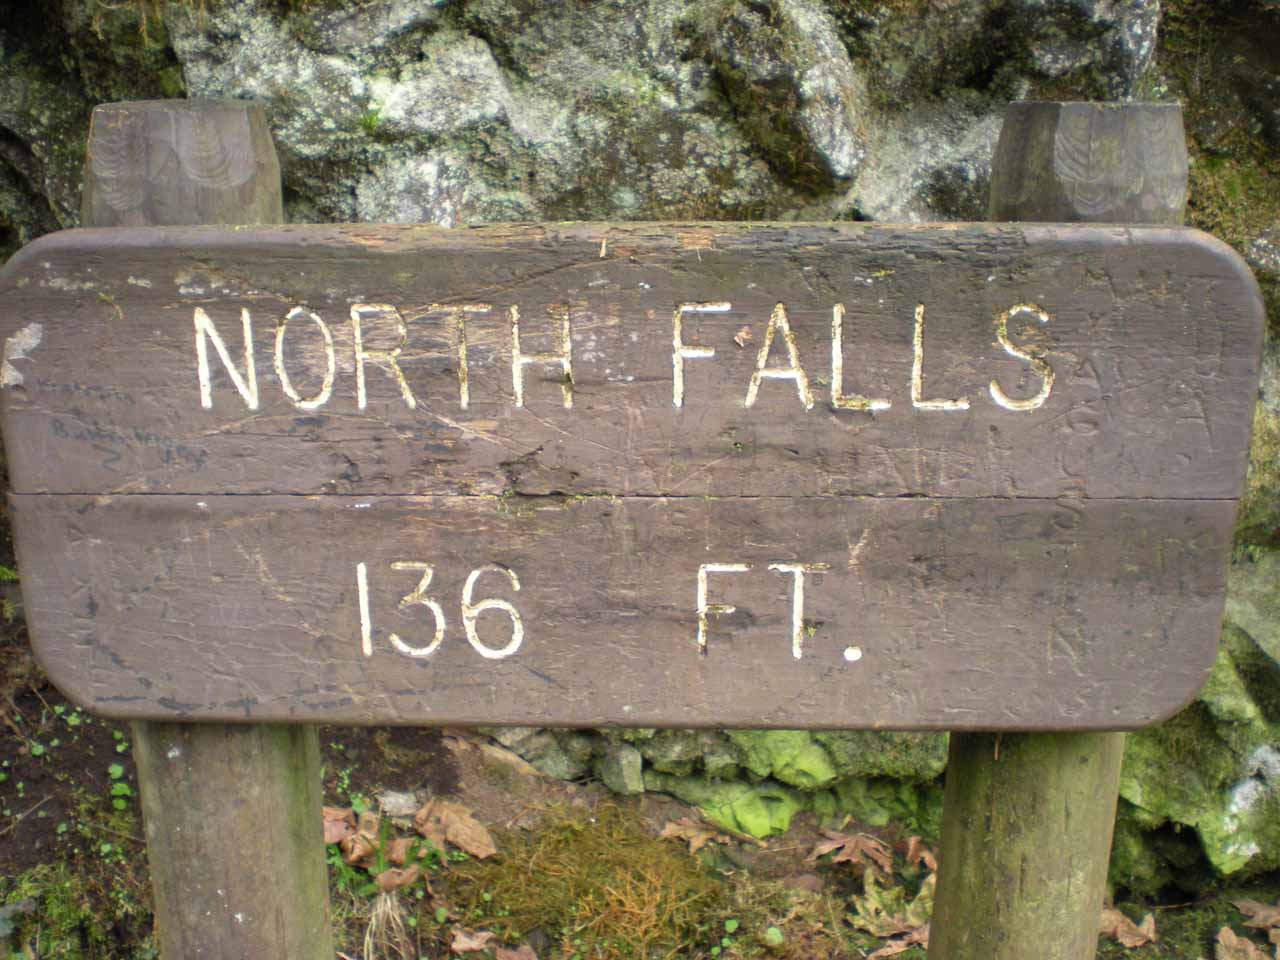 Signpost of North Falls telling us its height